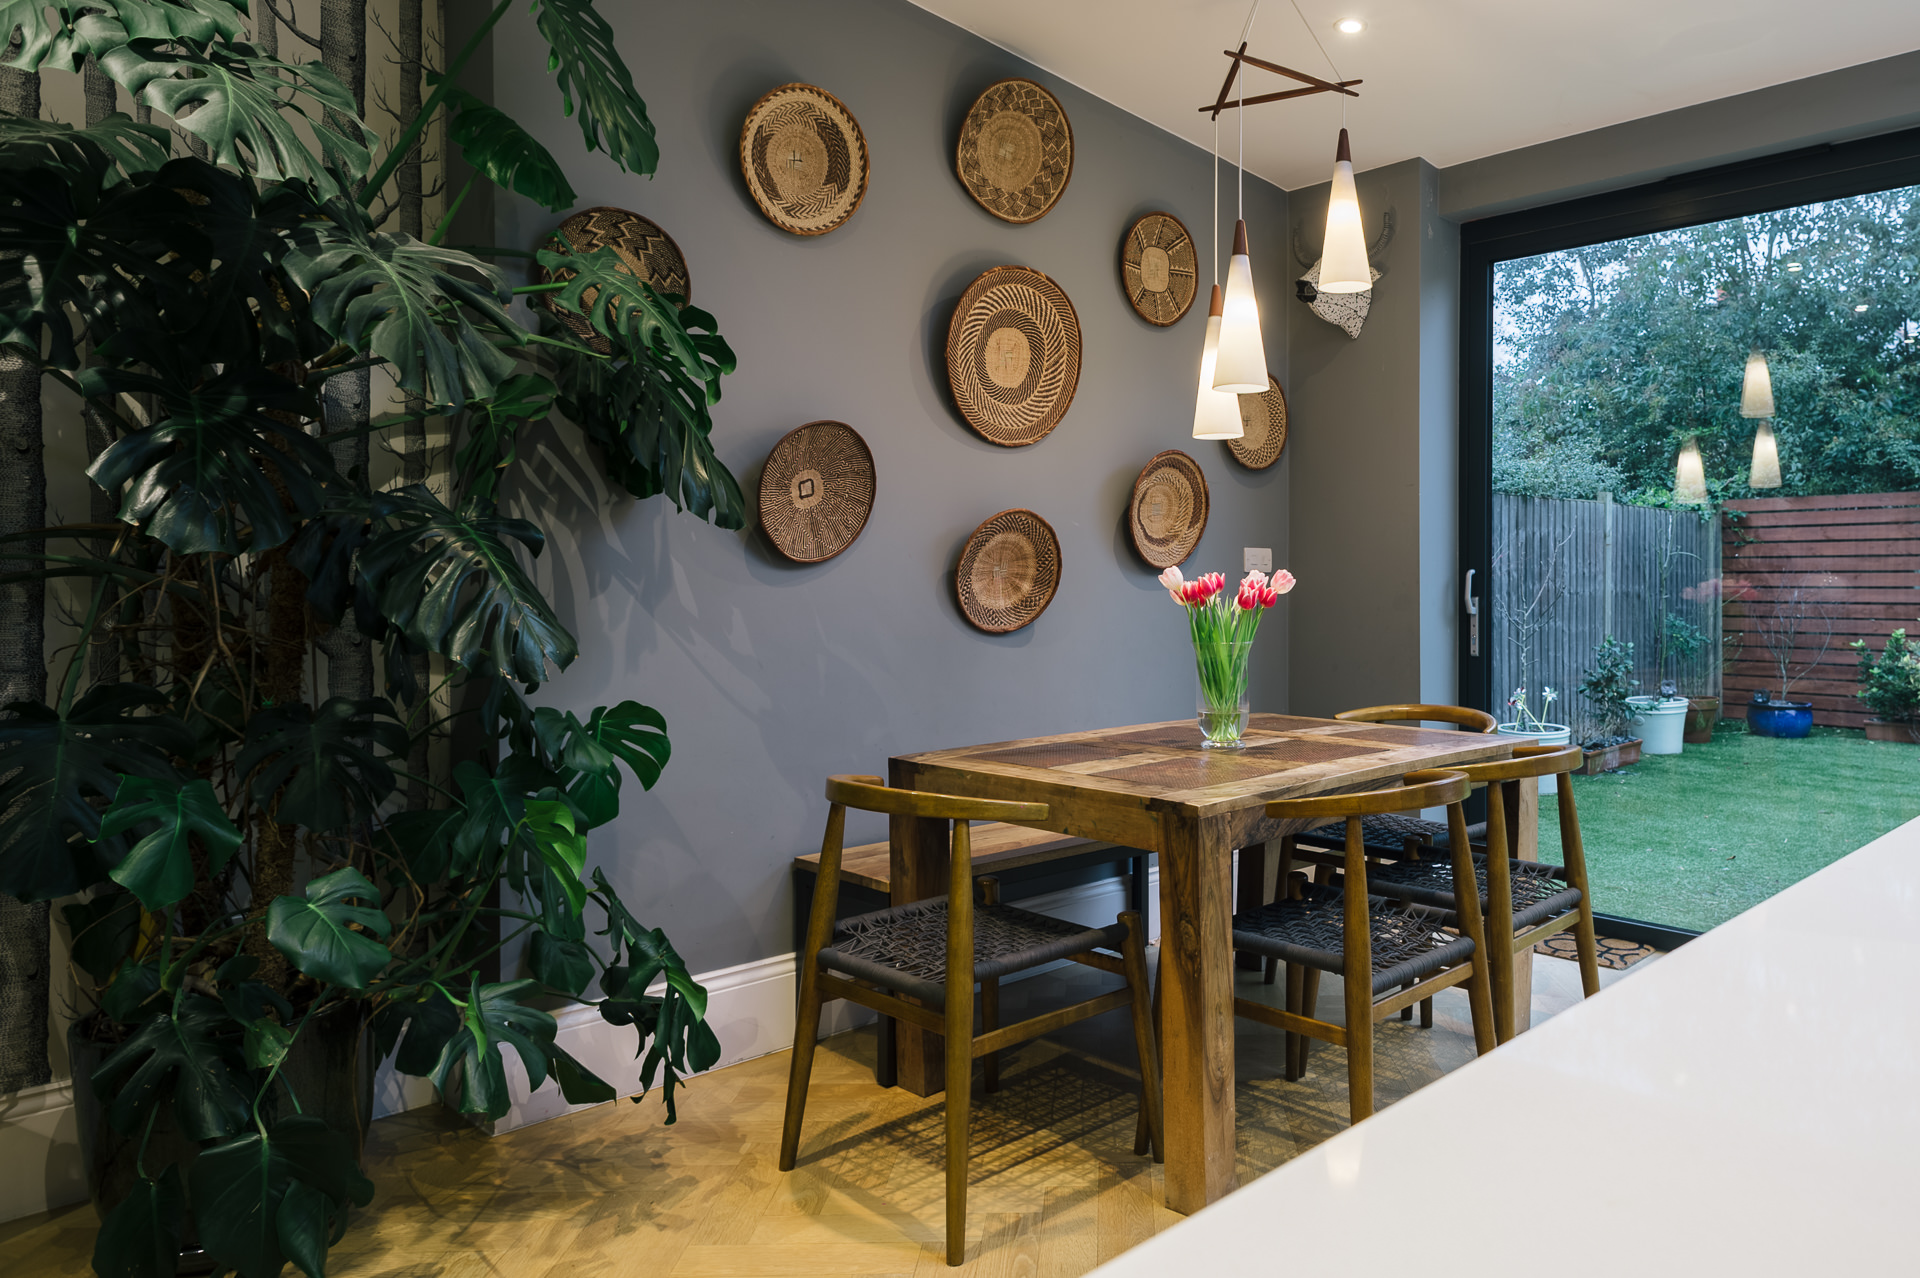 wooden table and wall decoration